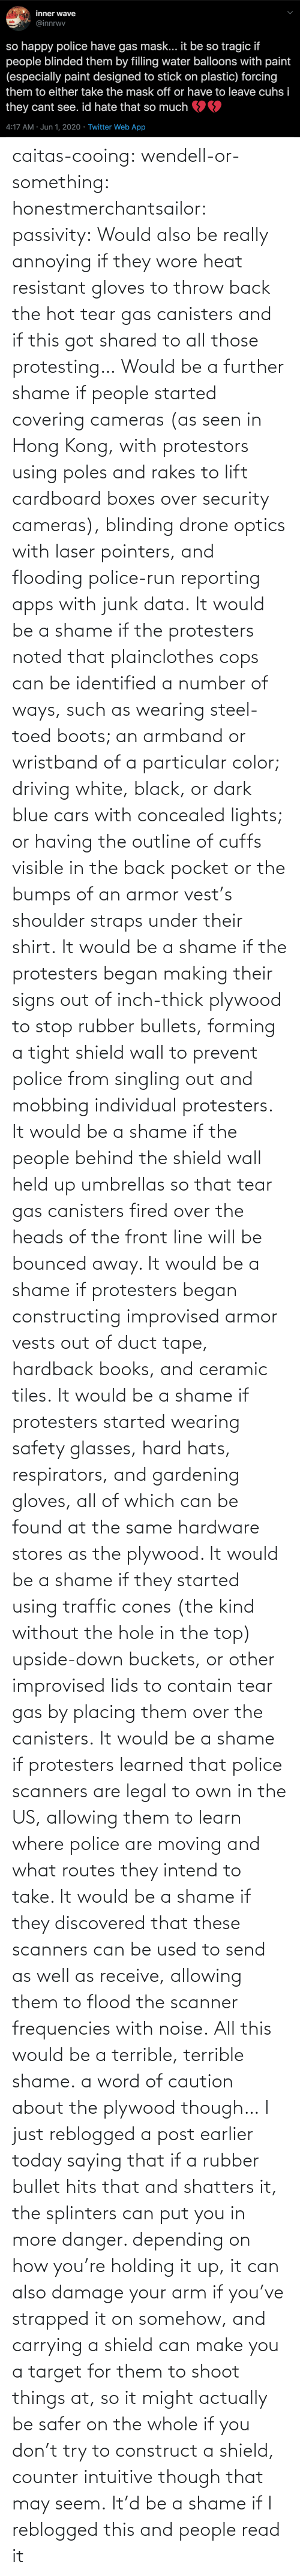 tight: caitas-cooing:  wendell-or-something: honestmerchantsailor:  passivity: Would also be really annoying if they wore heat resistant gloves to throw back the hot tear gas canisters and if this got shared to all those protesting… Would be a further shame if people started covering cameras (as seen in Hong Kong, with protestors using poles and rakes to lift cardboard boxes over security cameras), blinding drone optics with laser pointers, and flooding police-run reporting apps with junk data. It would be a shame if the protesters noted that plainclothes cops can be identified a number of ways, such as wearing steel-toed boots; an armband or wristband of a particular color; driving white, black, or dark blue cars with concealed lights; or having the outline of cuffs visible in the back pocket or the bumps of an armor vest's shoulder straps under their shirt. It would be a shame if the protesters began making their signs out of inch-thick plywood to stop rubber bullets, forming a tight shield wall to prevent police from singling out and mobbing individual protesters. It would be a shame if the people behind the shield wall held up umbrellas so that tear gas canisters fired over the heads of the front line will be bounced away. It would be a shame if protesters began constructing improvised armor vests out of duct tape, hardback books, and ceramic tiles. It would be a shame if protesters started wearing safety glasses, hard hats, respirators, and gardening gloves, all of which can be found at the same hardware stores as the plywood. It would be a shame if they started using traffic cones (the kind without the hole in the top) upside-down buckets, or other improvised lids to contain tear gas by placing them over the canisters. It would be a shame if protesters learned that police scanners are legal to own in the US, allowing them to learn where police are moving and what routes they intend to take. It would be a shame if they discovered that these scanners can be used to send as well as receive, allowing them to flood the scanner frequencies with noise. All this would be a terrible, terrible shame.    a word of caution about the plywood though… I just reblogged a post earlier today saying that if a rubber bullet hits that and shatters it, the splinters can put you in more danger. depending on how you're holding it up, it can also damage your arm if you've strapped it on somehow, and carrying a shield can make you a target for them to shoot things at, so it might actually be safer on the whole if you don't try to construct a shield, counter intuitive though that may seem.    It'd be a shame if I reblogged this and people read it